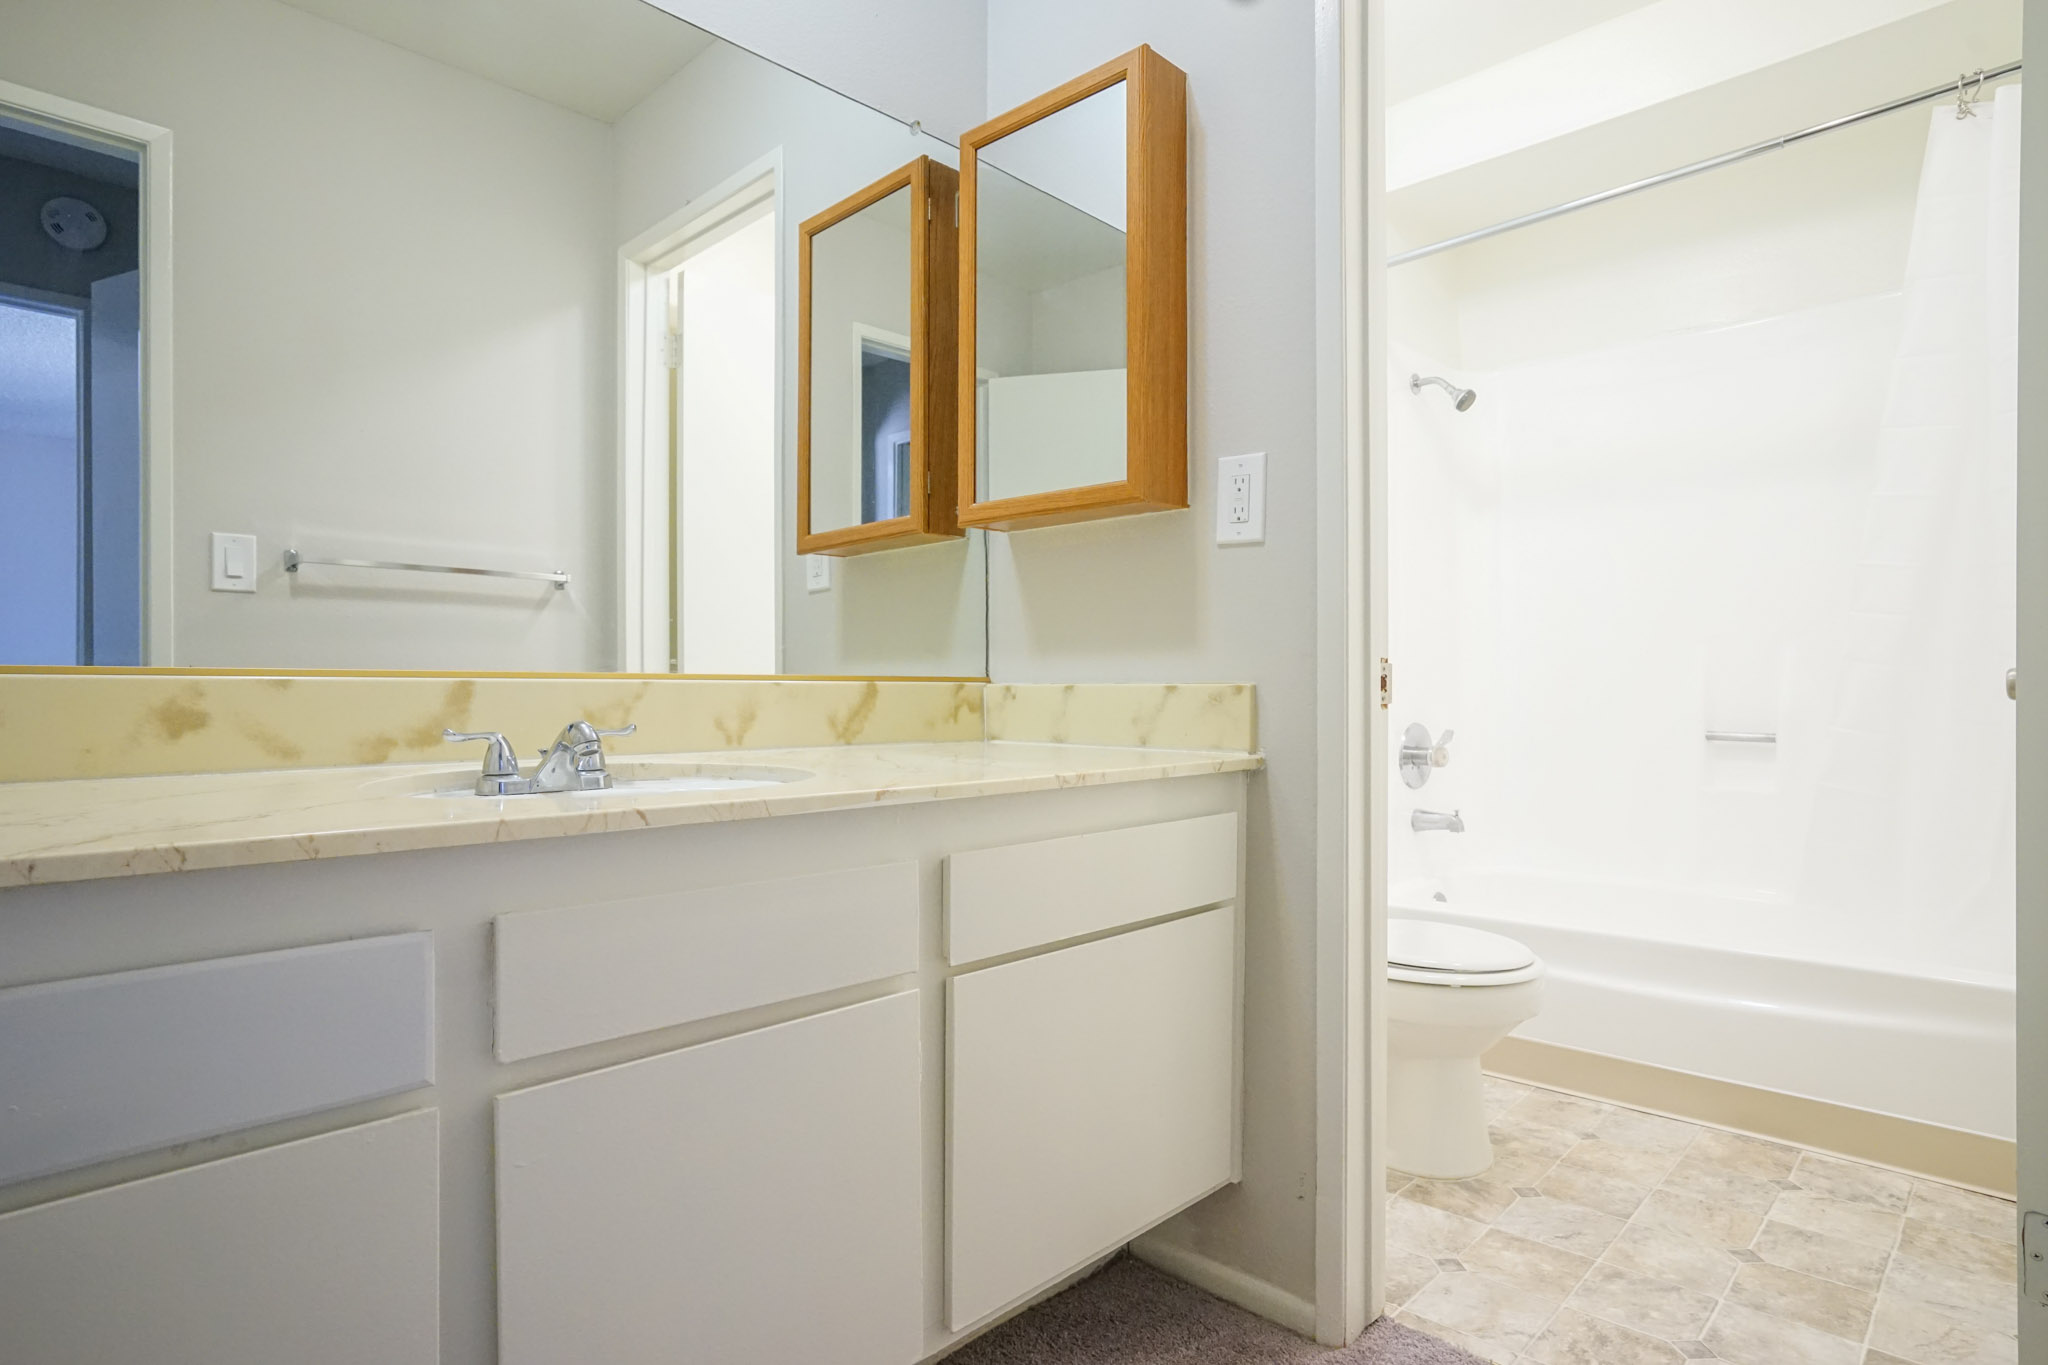 View of a bathroom with a sink, mirror, medicine cabinet, toilet and a bathtub. There are cabinets under the sink, and towel rack across from it.